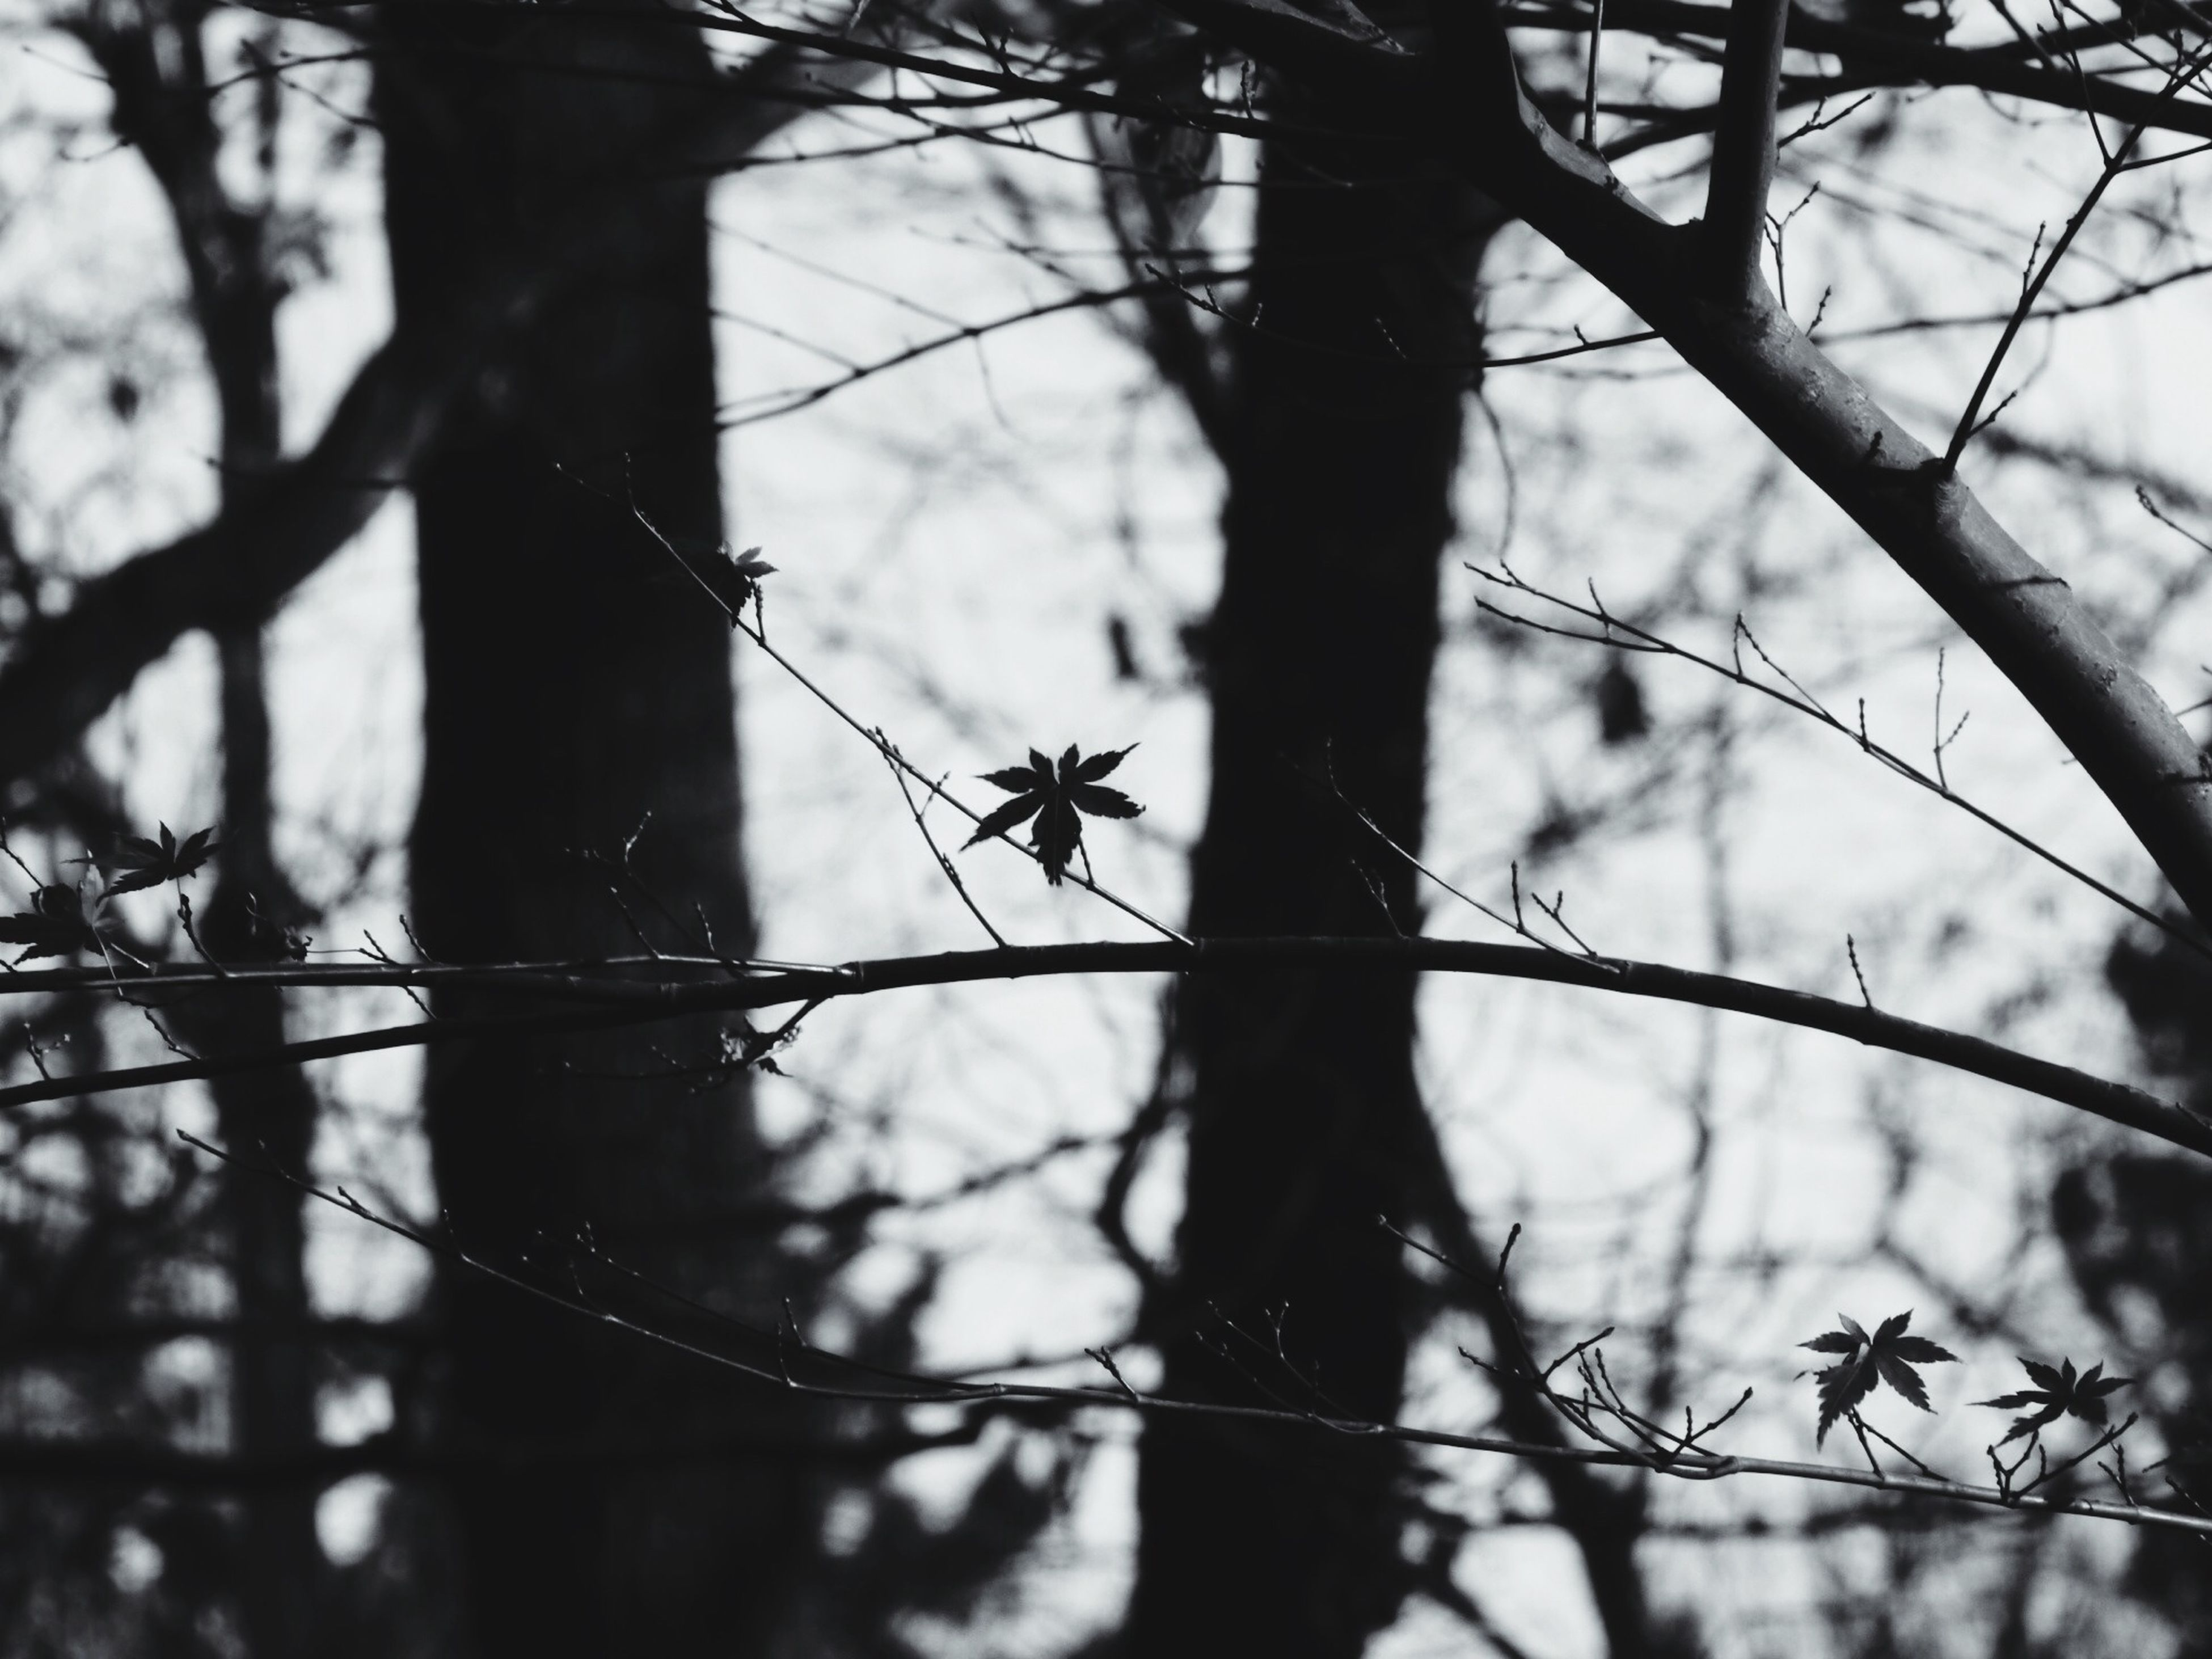 branch, tree, focus on foreground, bare tree, silhouette, tree trunk, nature, close-up, fence, wildlife, twig, no people, outdoors, protection, tranquility, animals in the wild, animal themes, day, selective focus, forest